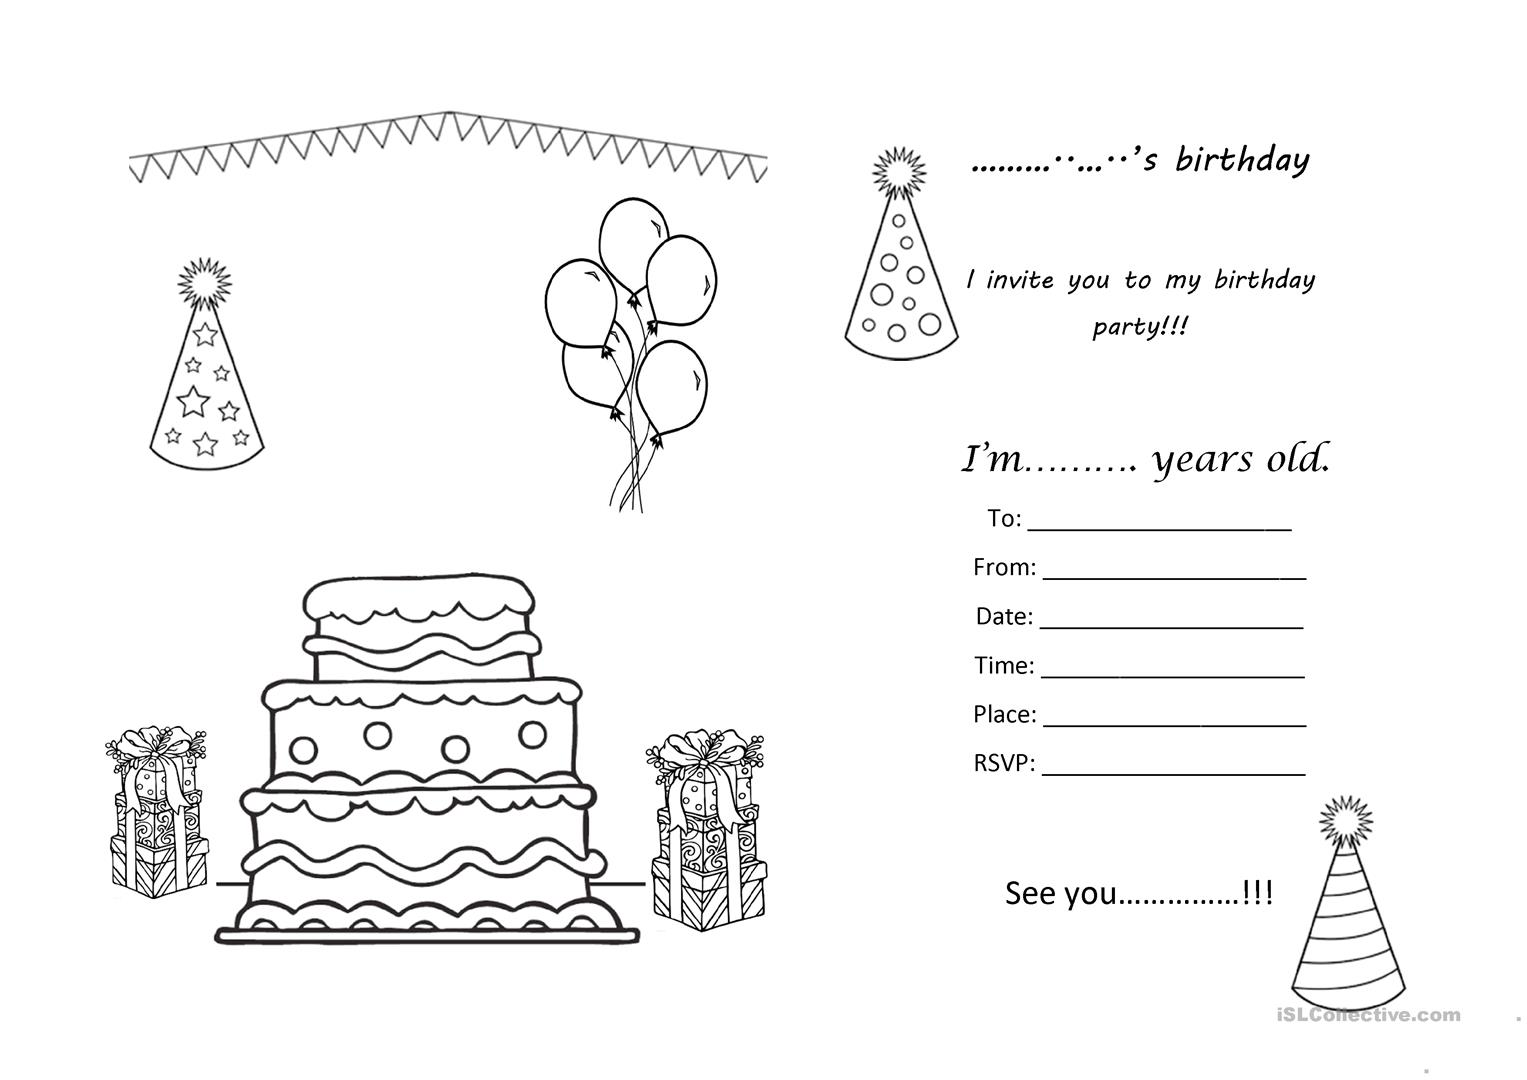 birthday party invitation worksheet free esl printable worksheets made by teachers. Black Bedroom Furniture Sets. Home Design Ideas